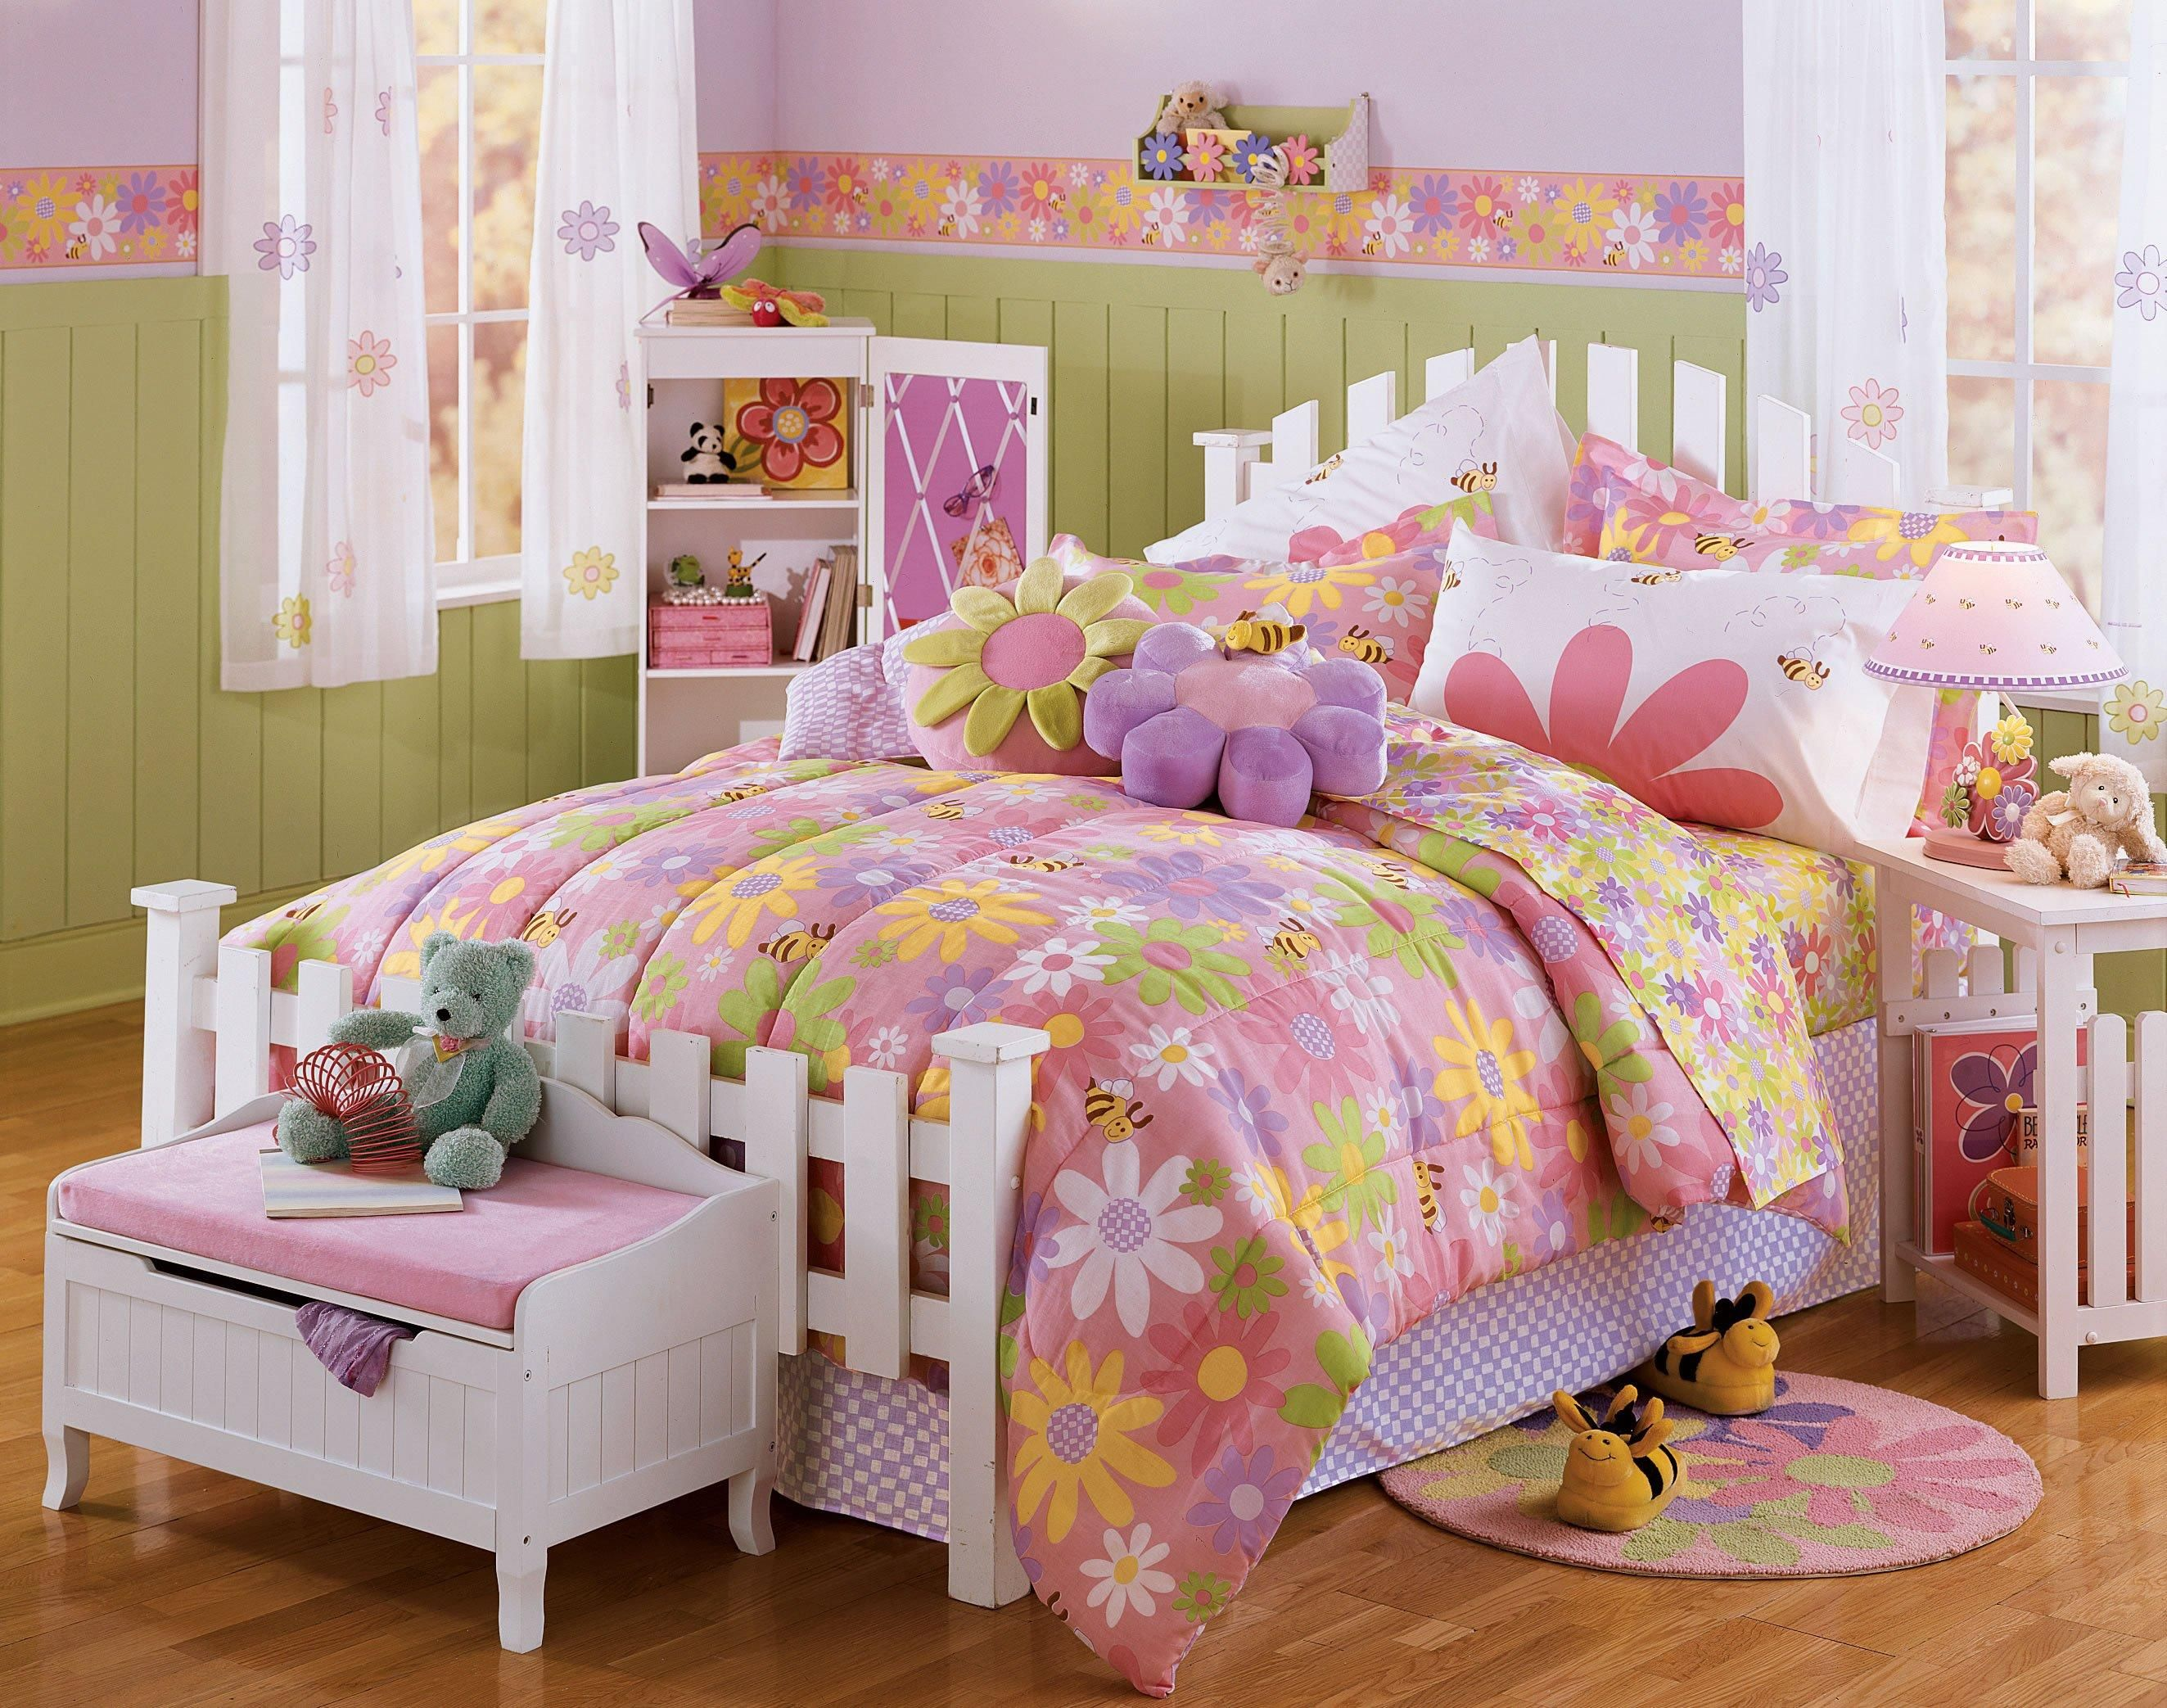 Pastel Green and Pink Bedroom http://rilane.com/decorating-ideas ...